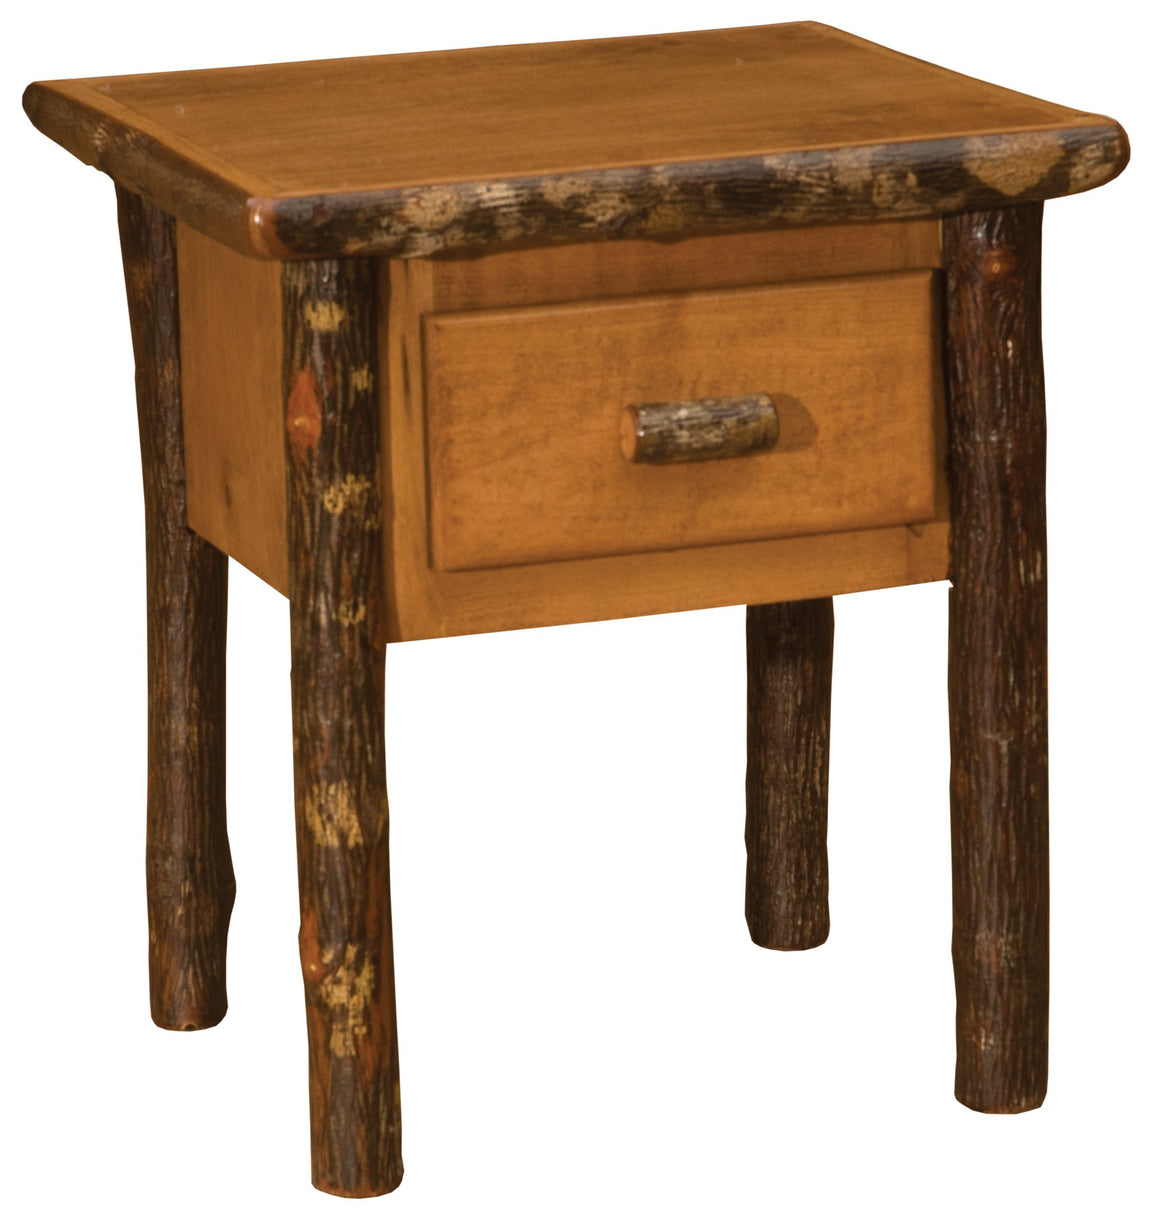 Hickory Log One Drawer End Table - Standard Finish - Rustic Deco Incorporated